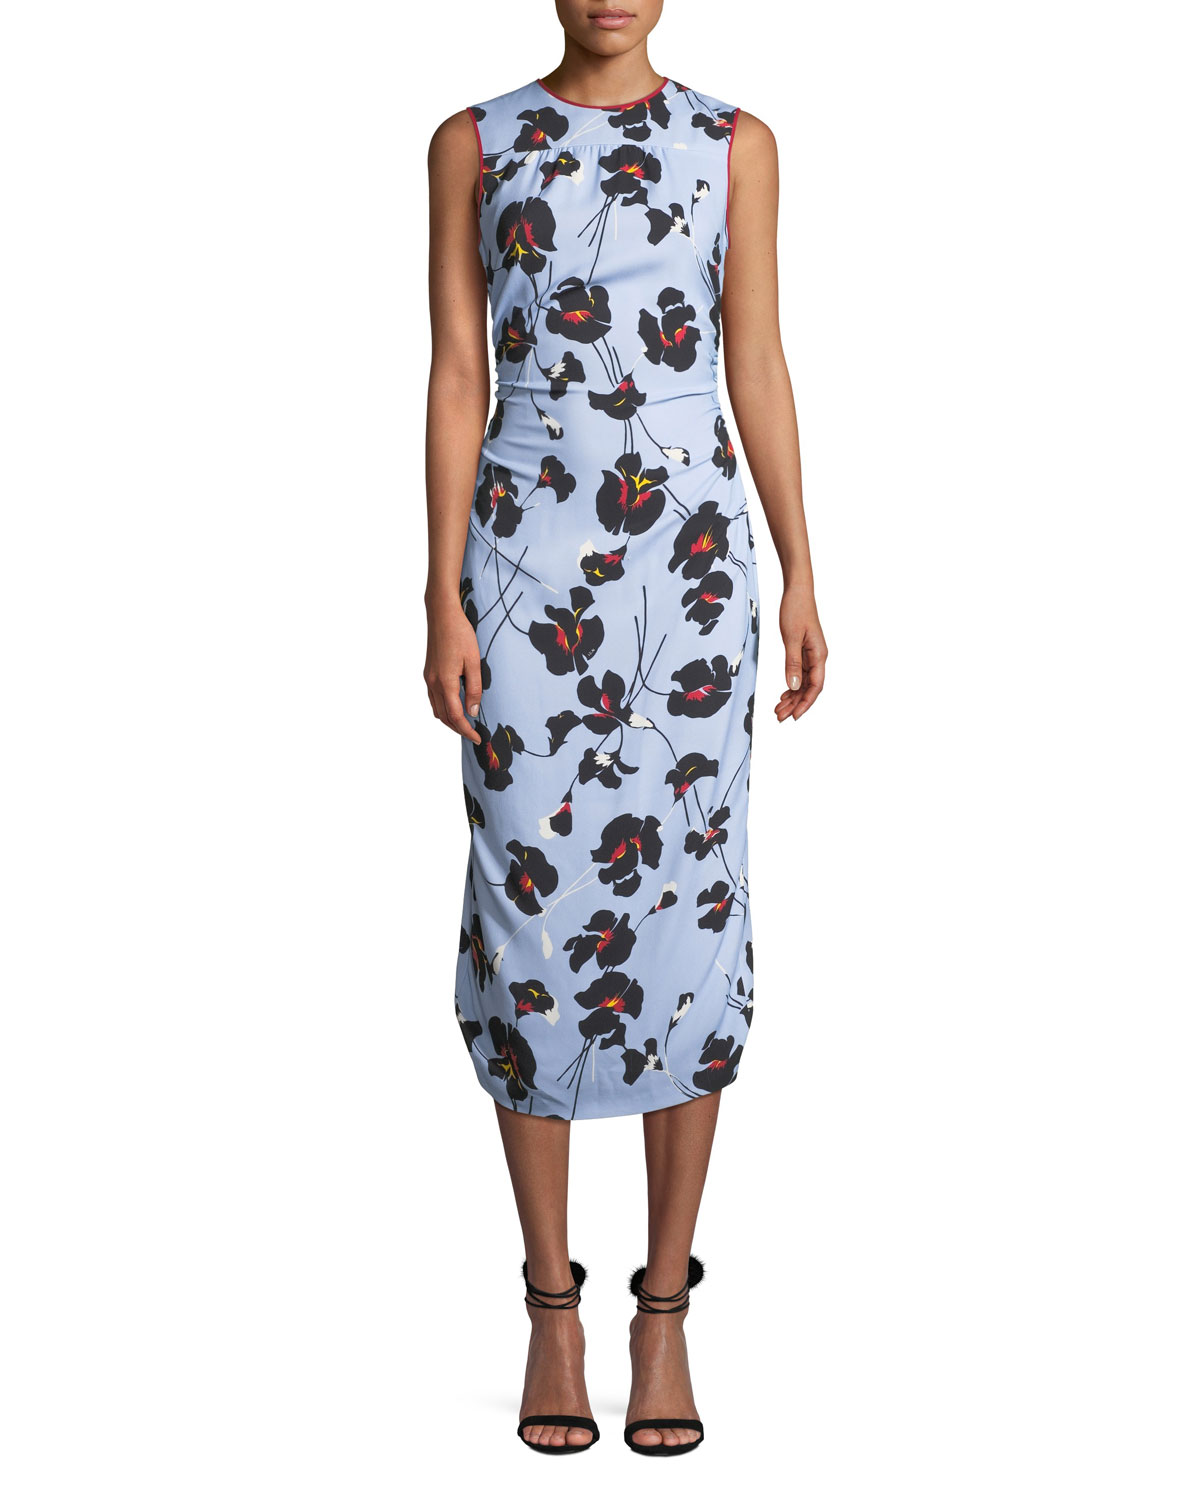 307634cce2b7 No. 21 Floral-Print Sleeveless Midi Dress